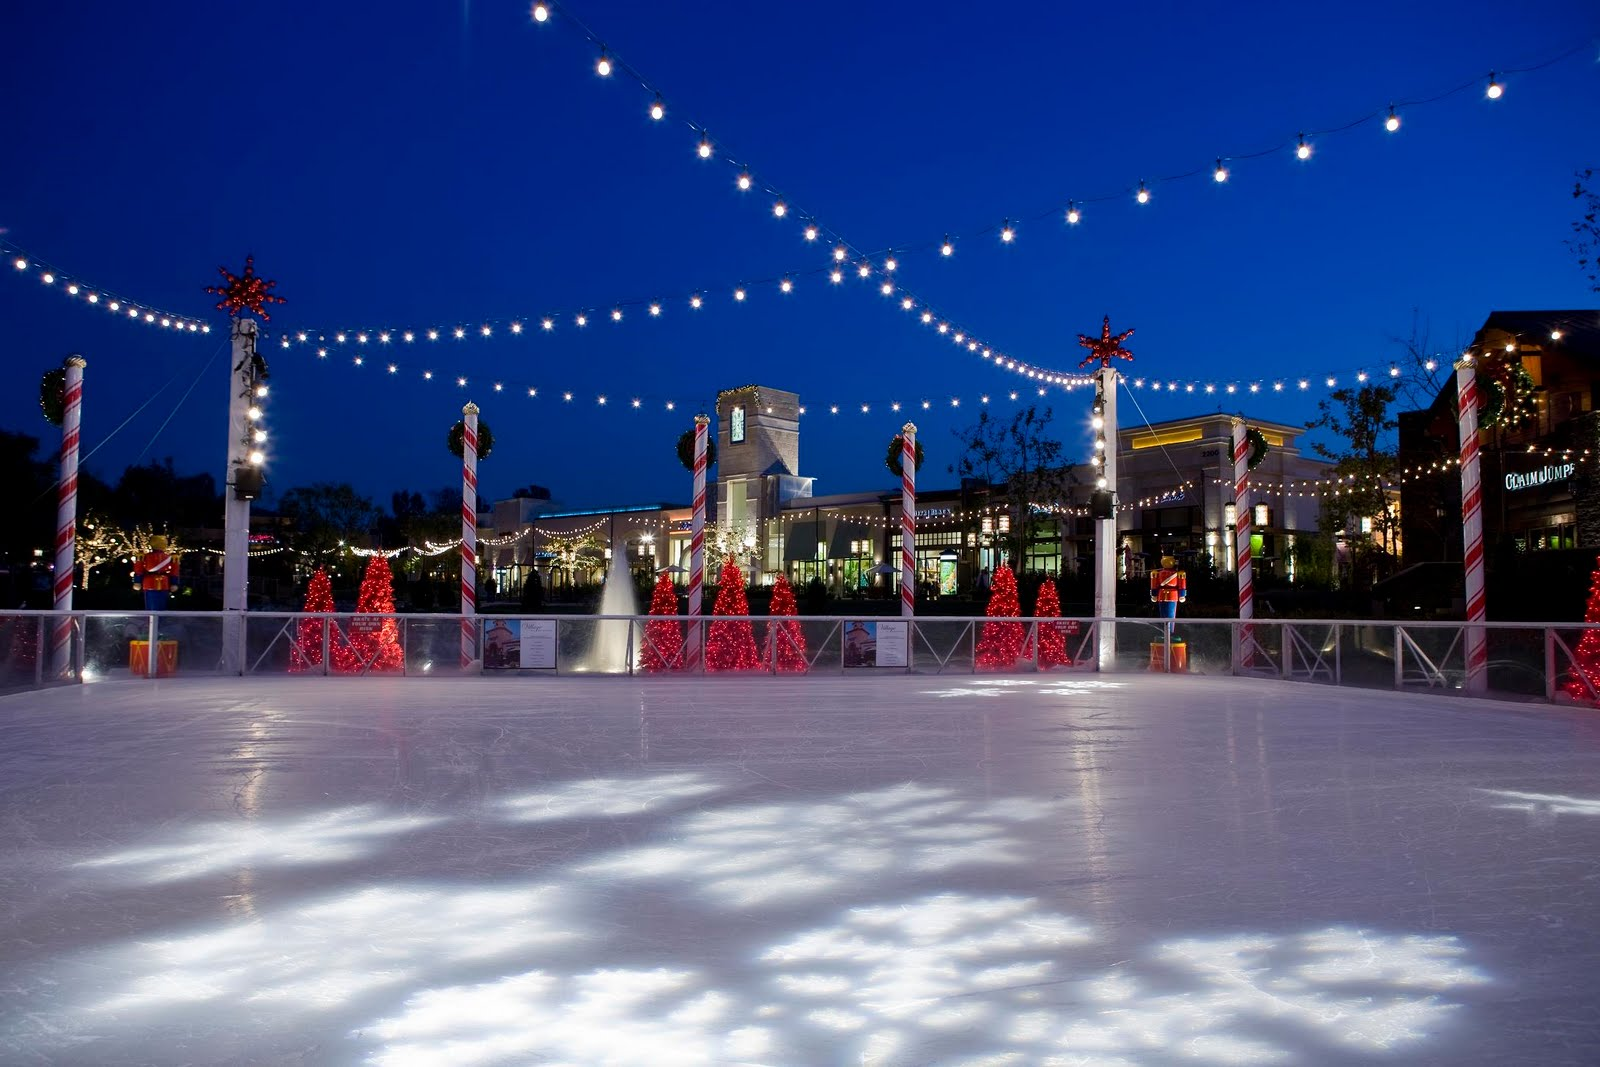 THE MAGICAL OUTDOOR ICE RINK RETURNS TO THE LAKES AT THOUSAND OAKS